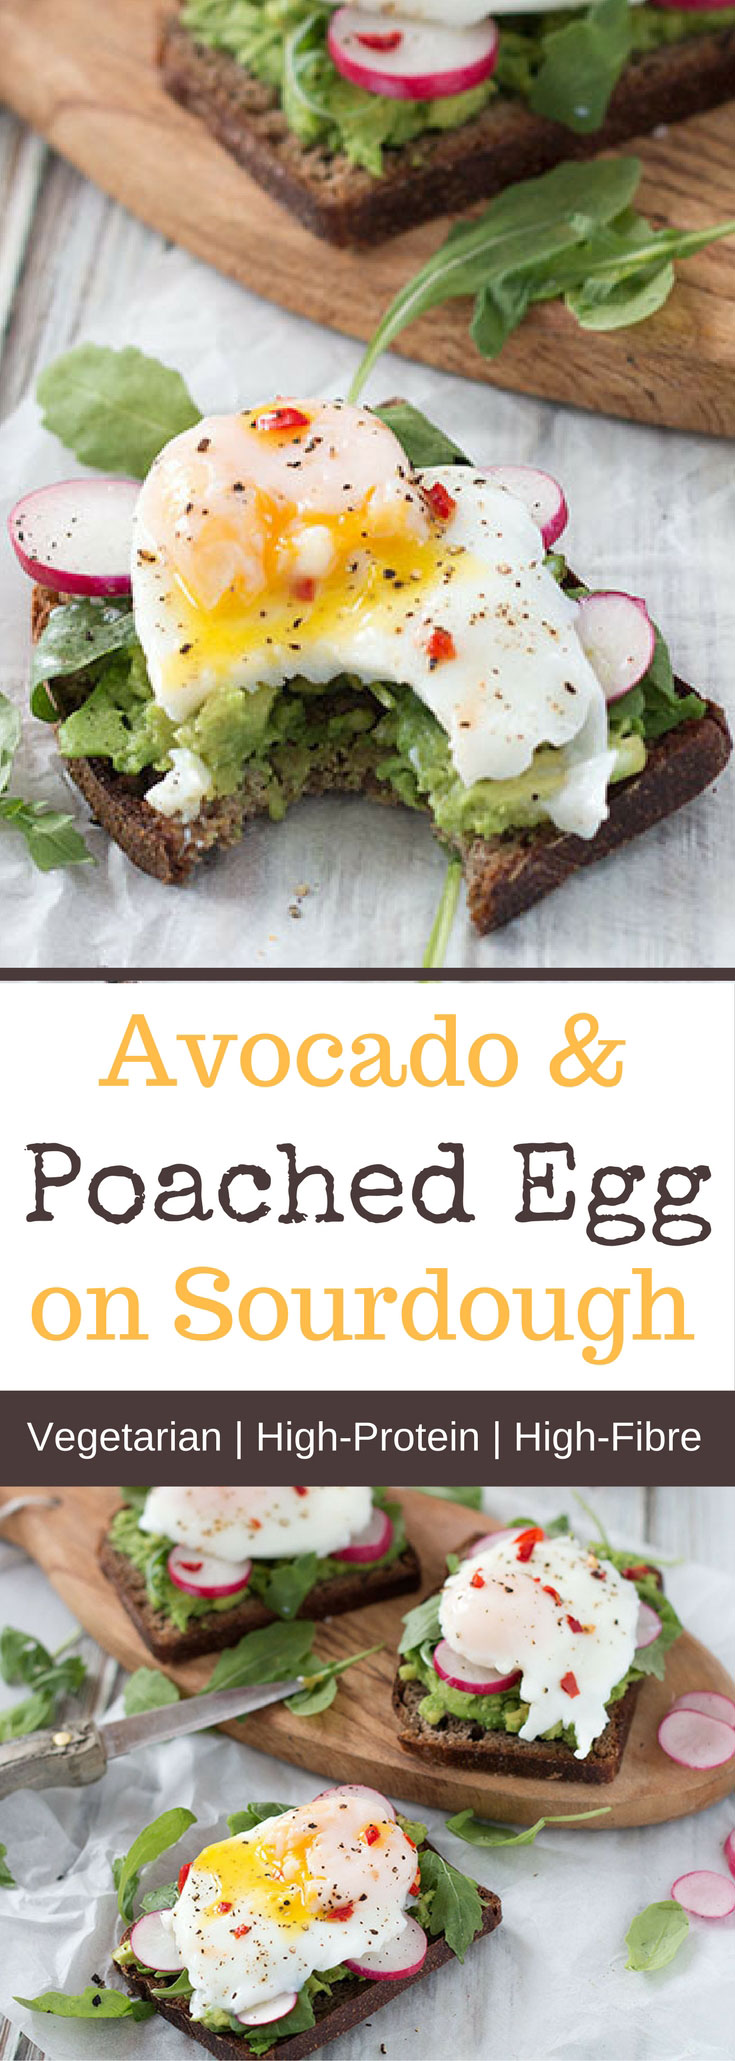 Avocado & Poached Egg On Sourdough Toast